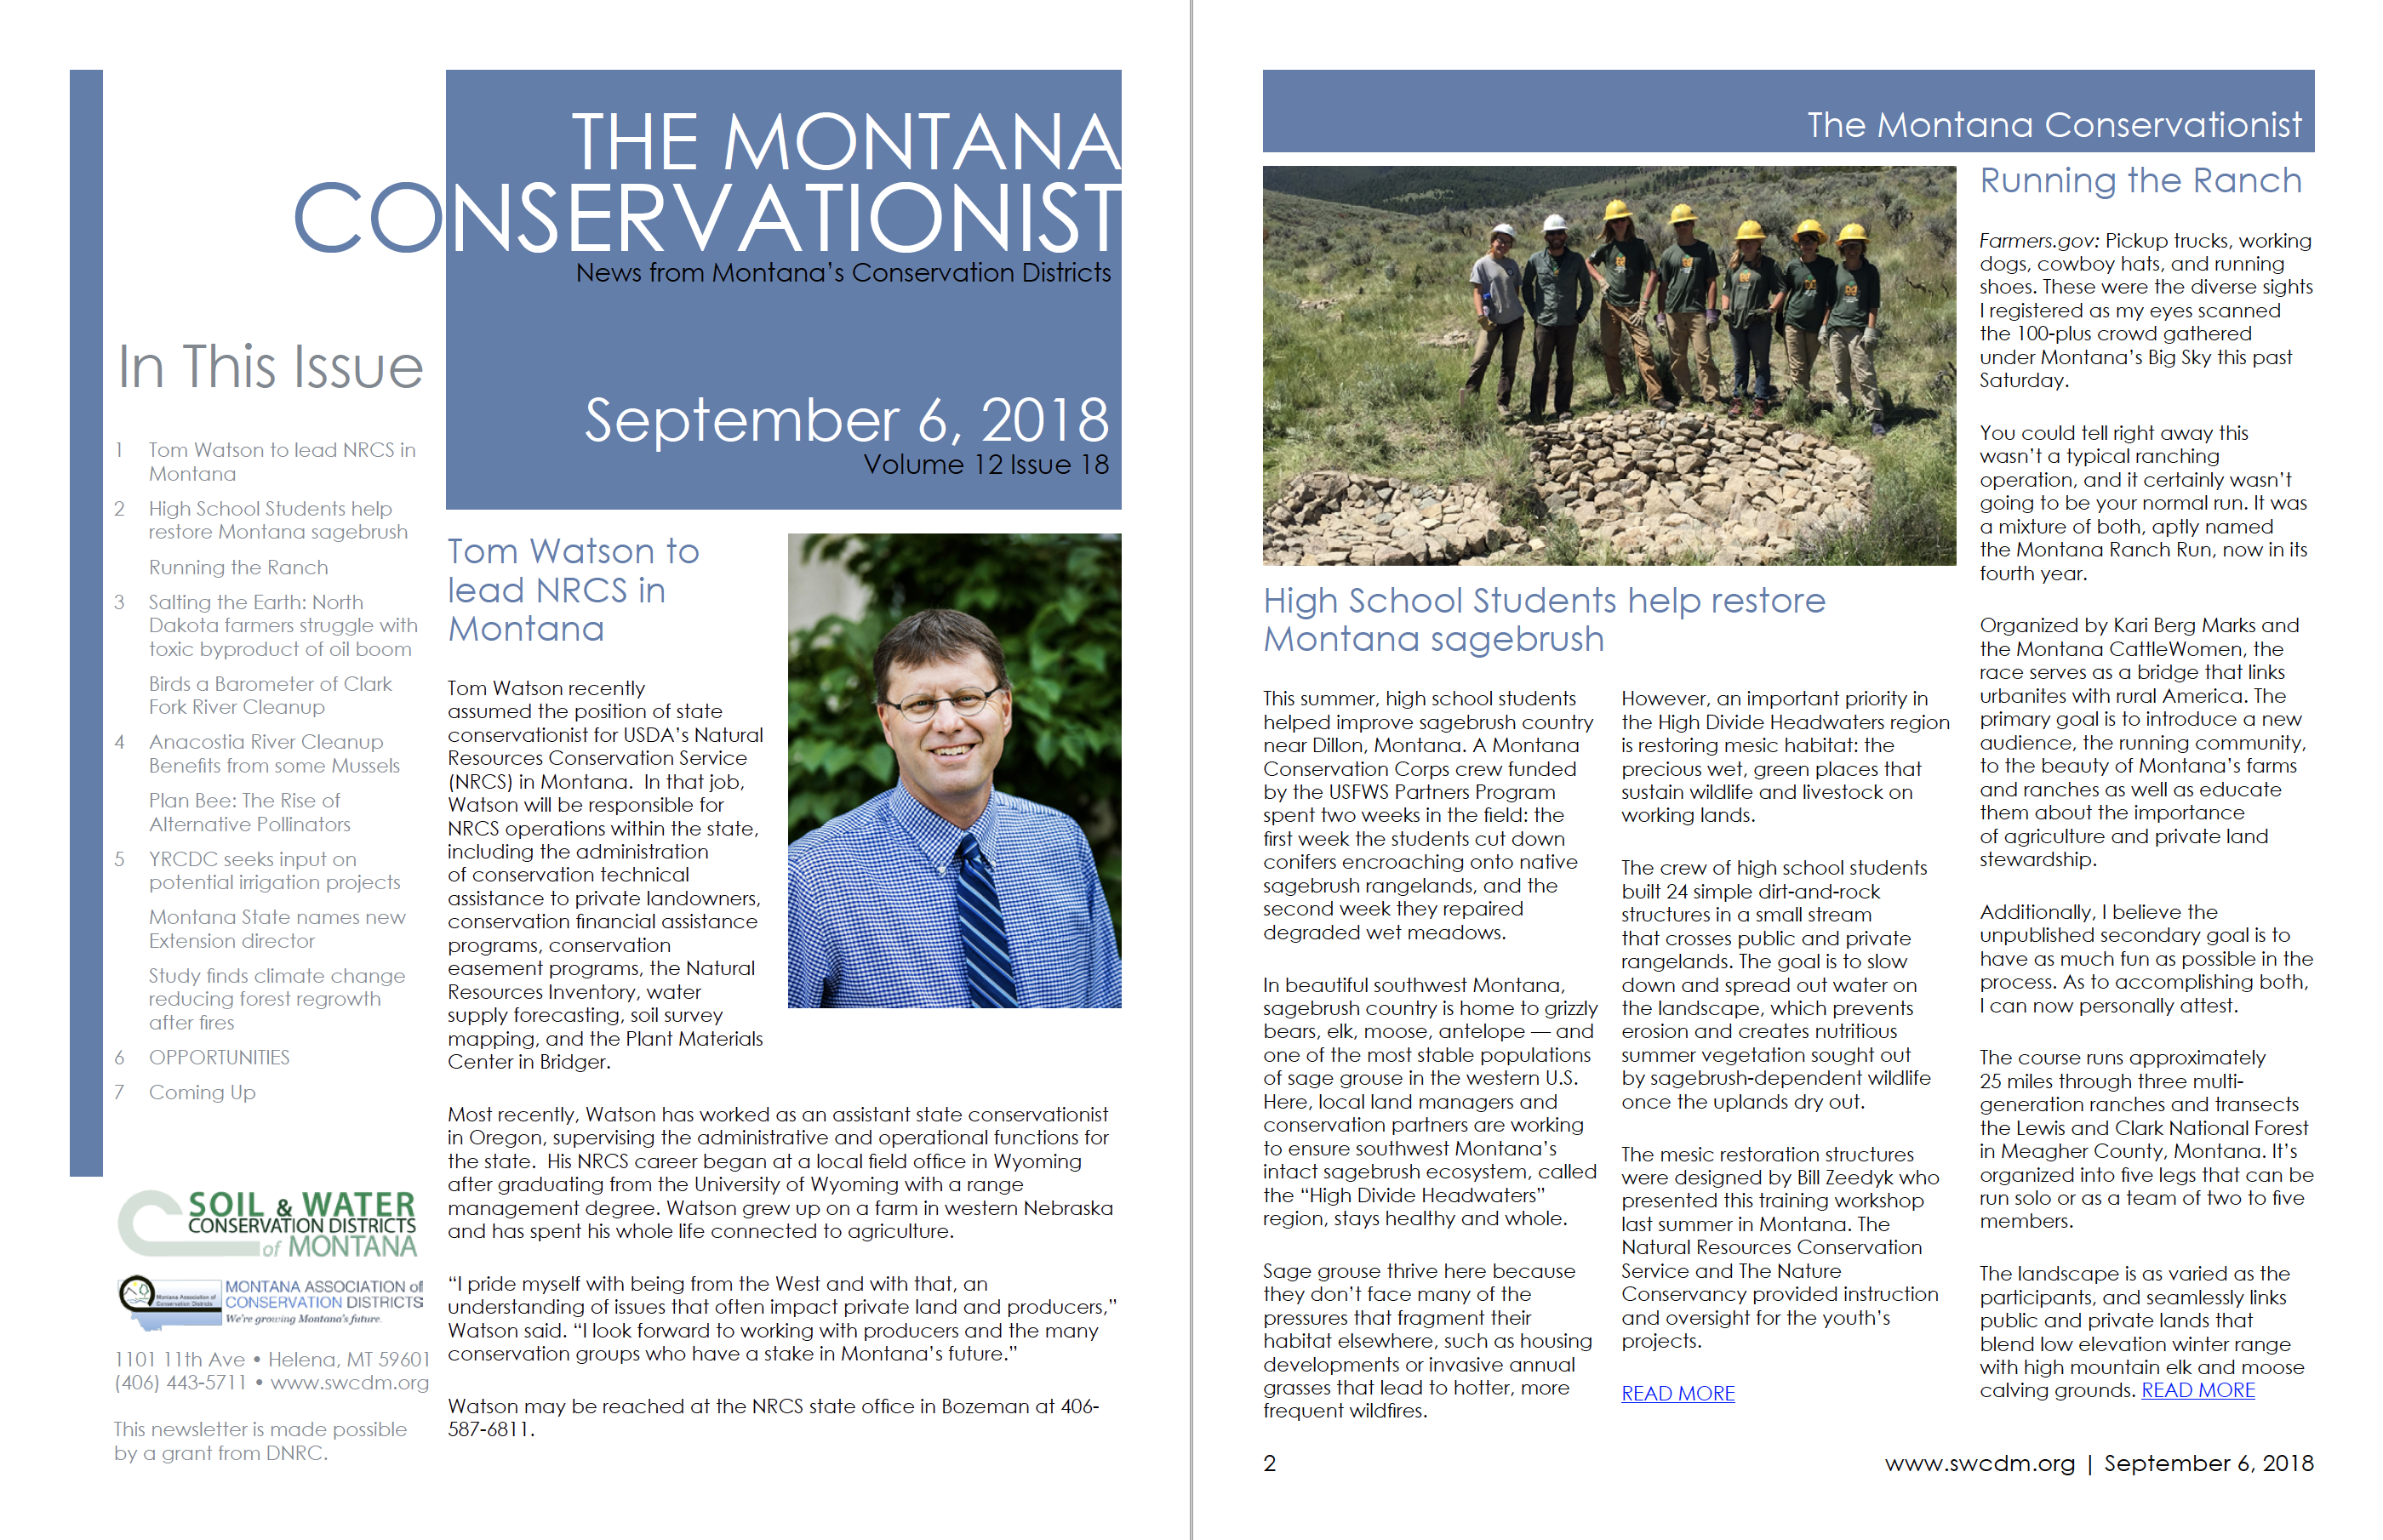 The Montana Conservationist September 6